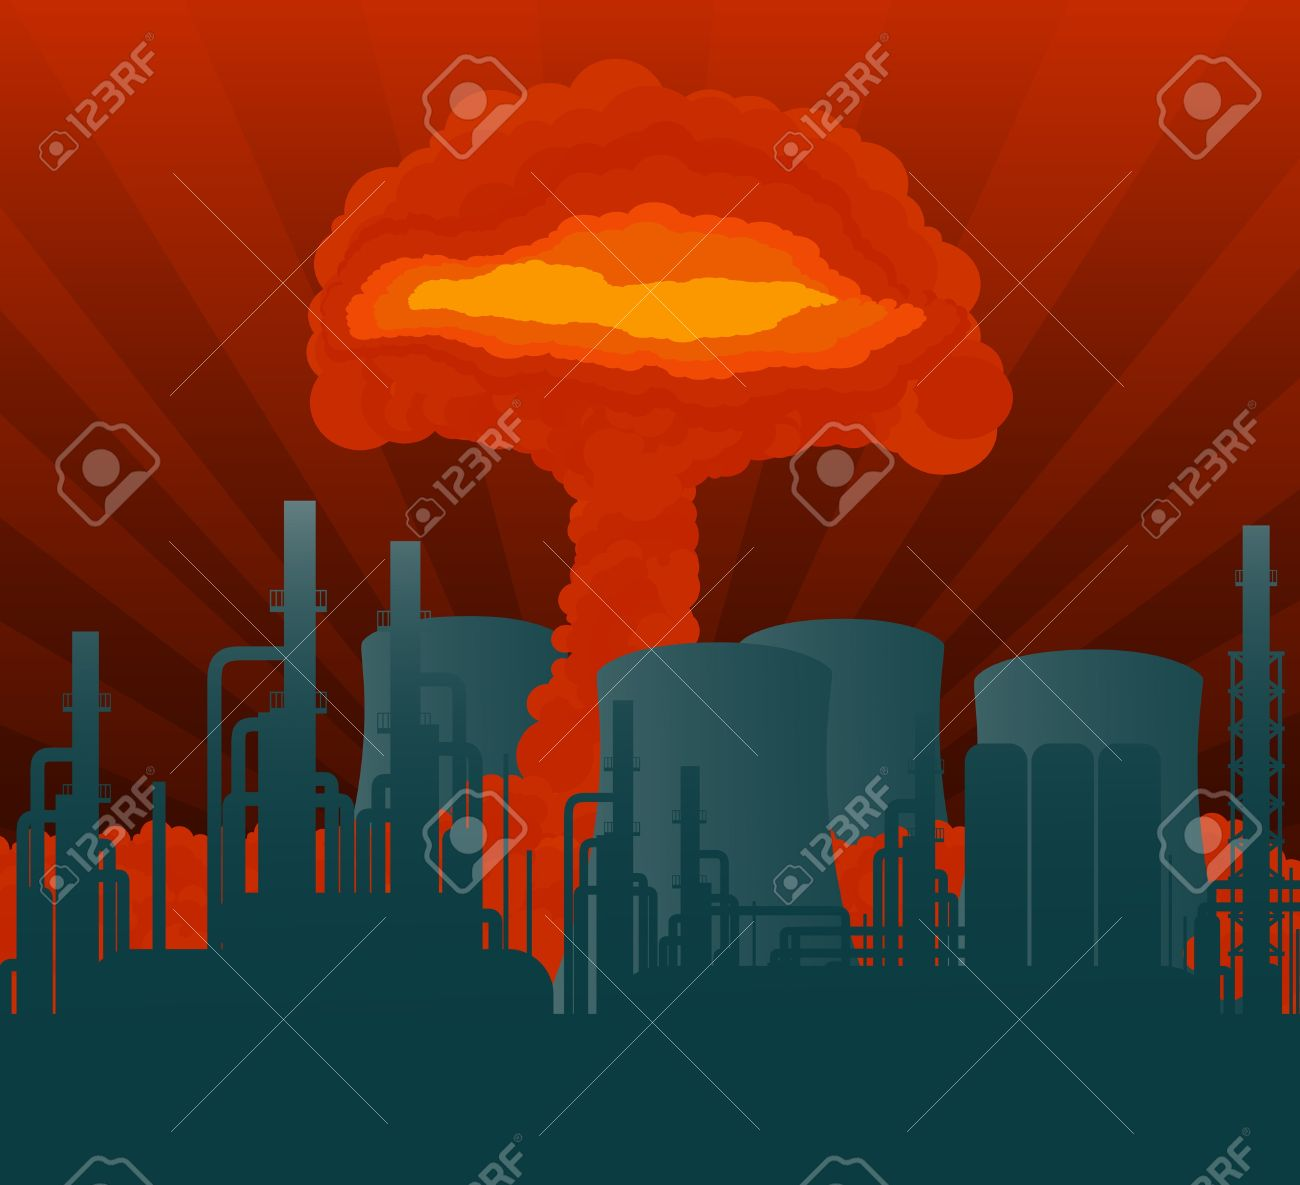 Atomic explosion cloud formed mushroom over nuclear power plant illustration Stock Vector - 10510723